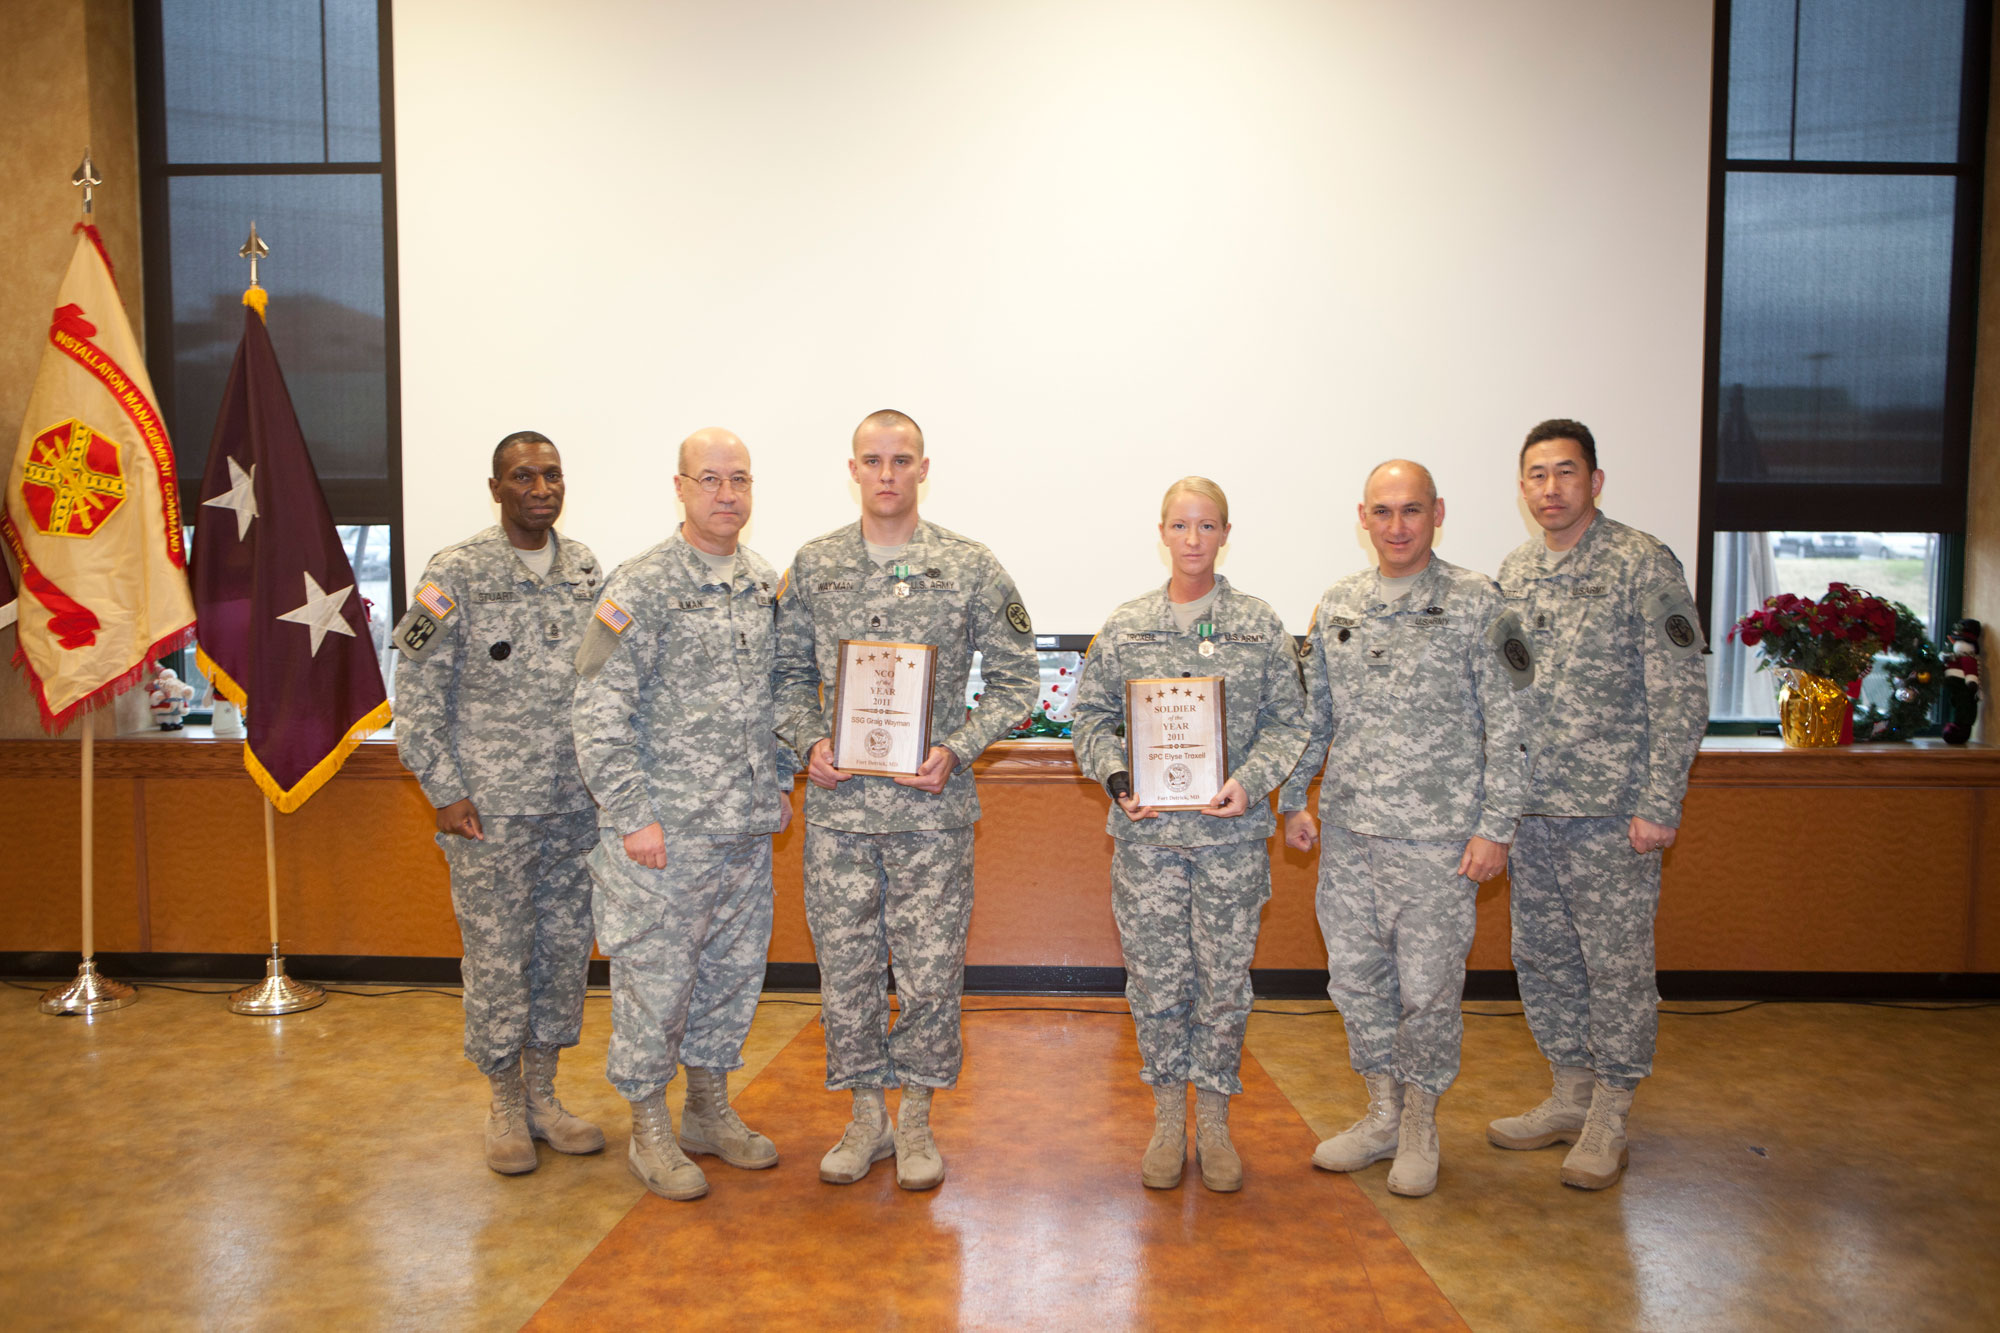 Fort Detrick leadership gathers to present awards to this year's winners